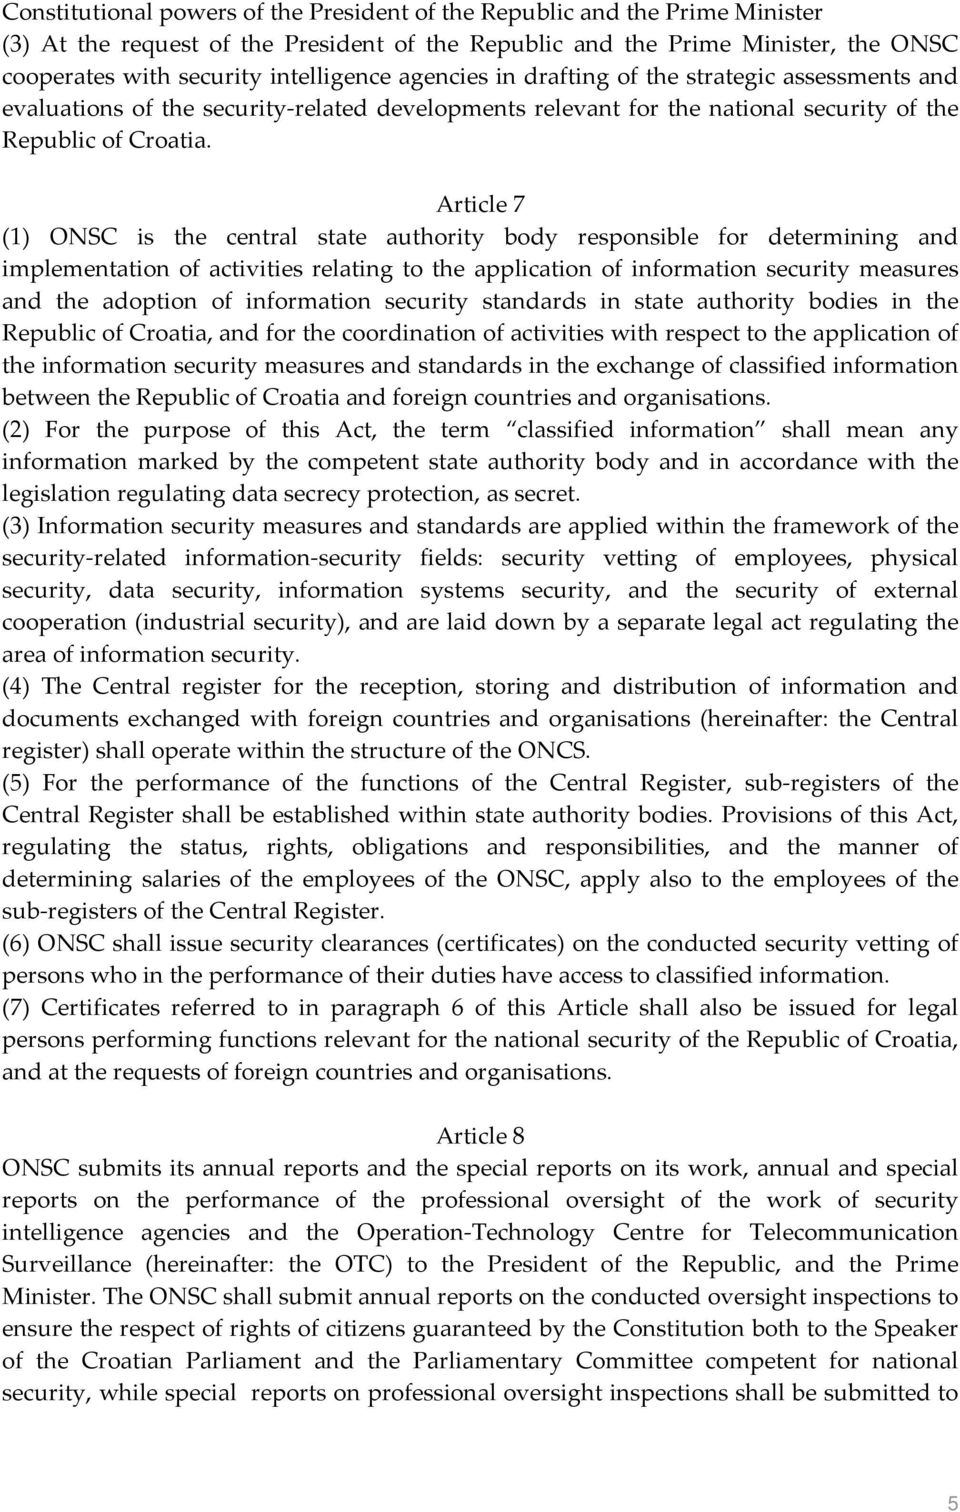 Article 7 (1) ONSC is the central state authority body responsible for determining and implementation of activities relating to the application of information security measures and the adoption of